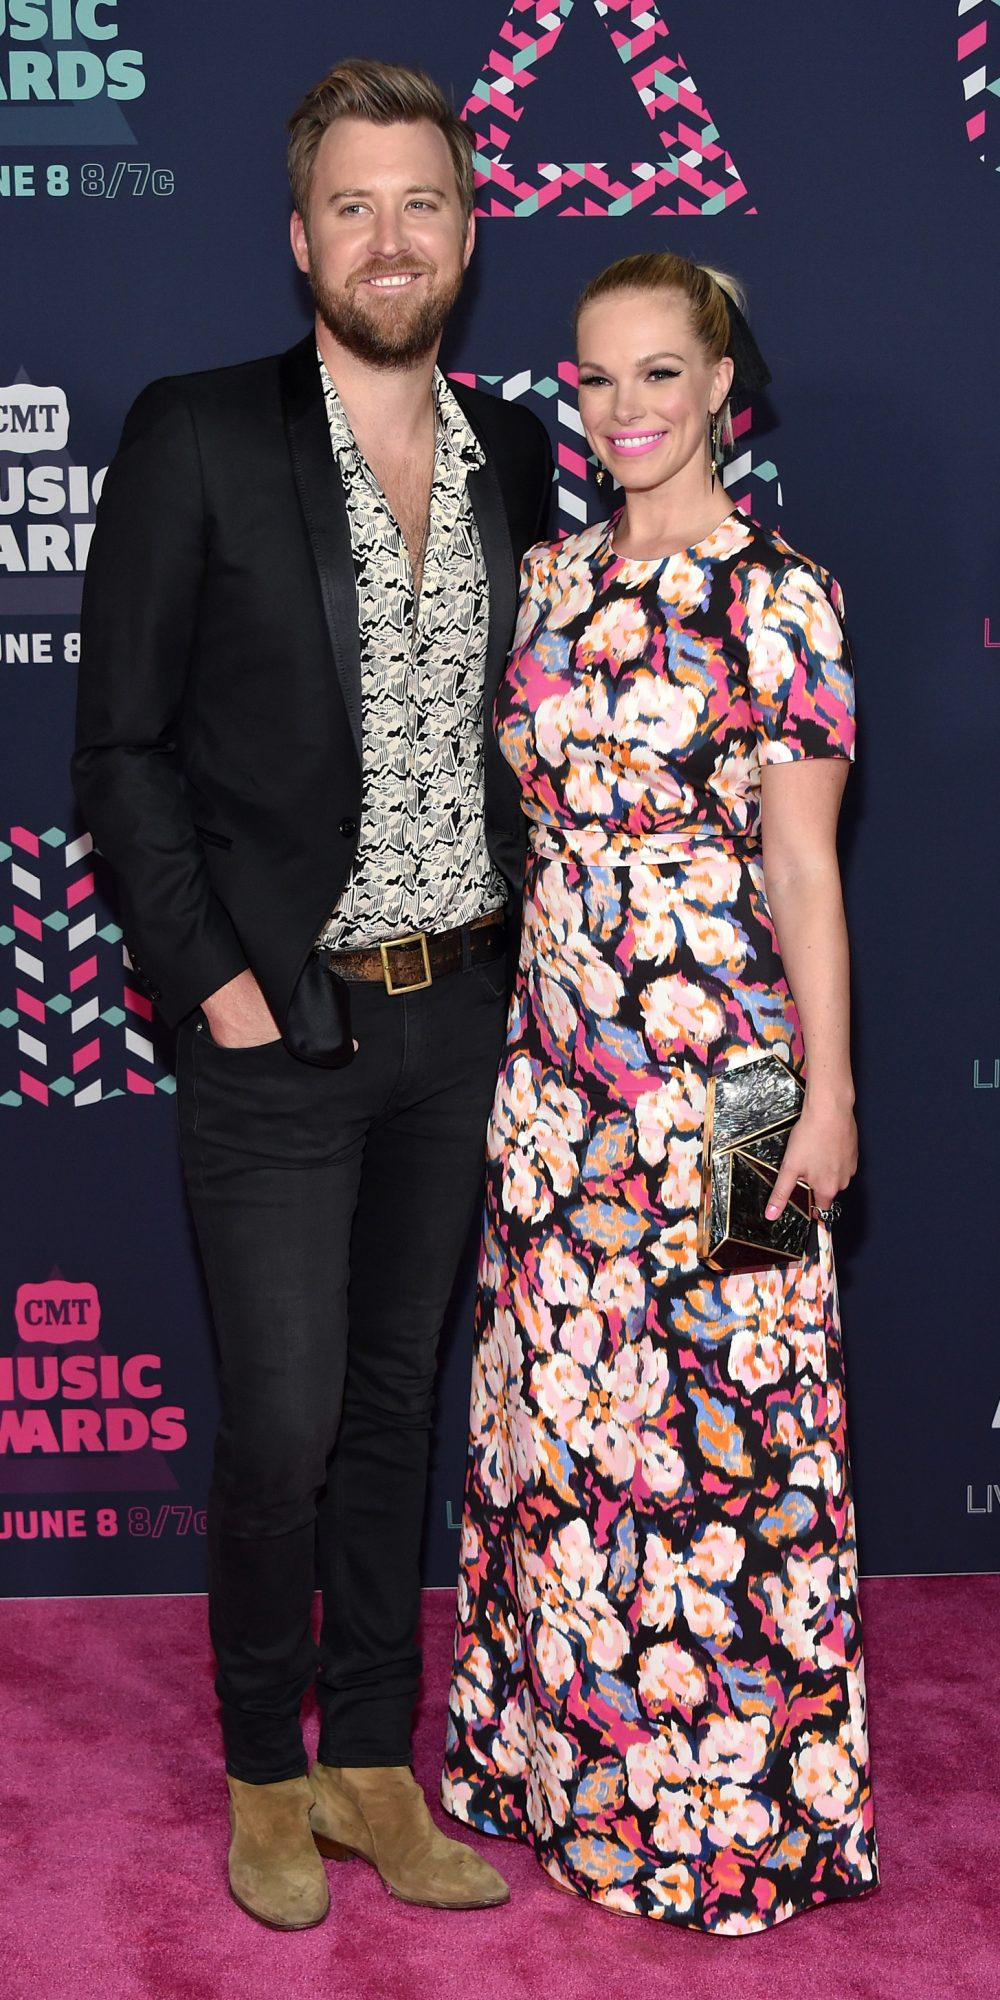 <p>Charles Kelley and Cassie McConnell</p>